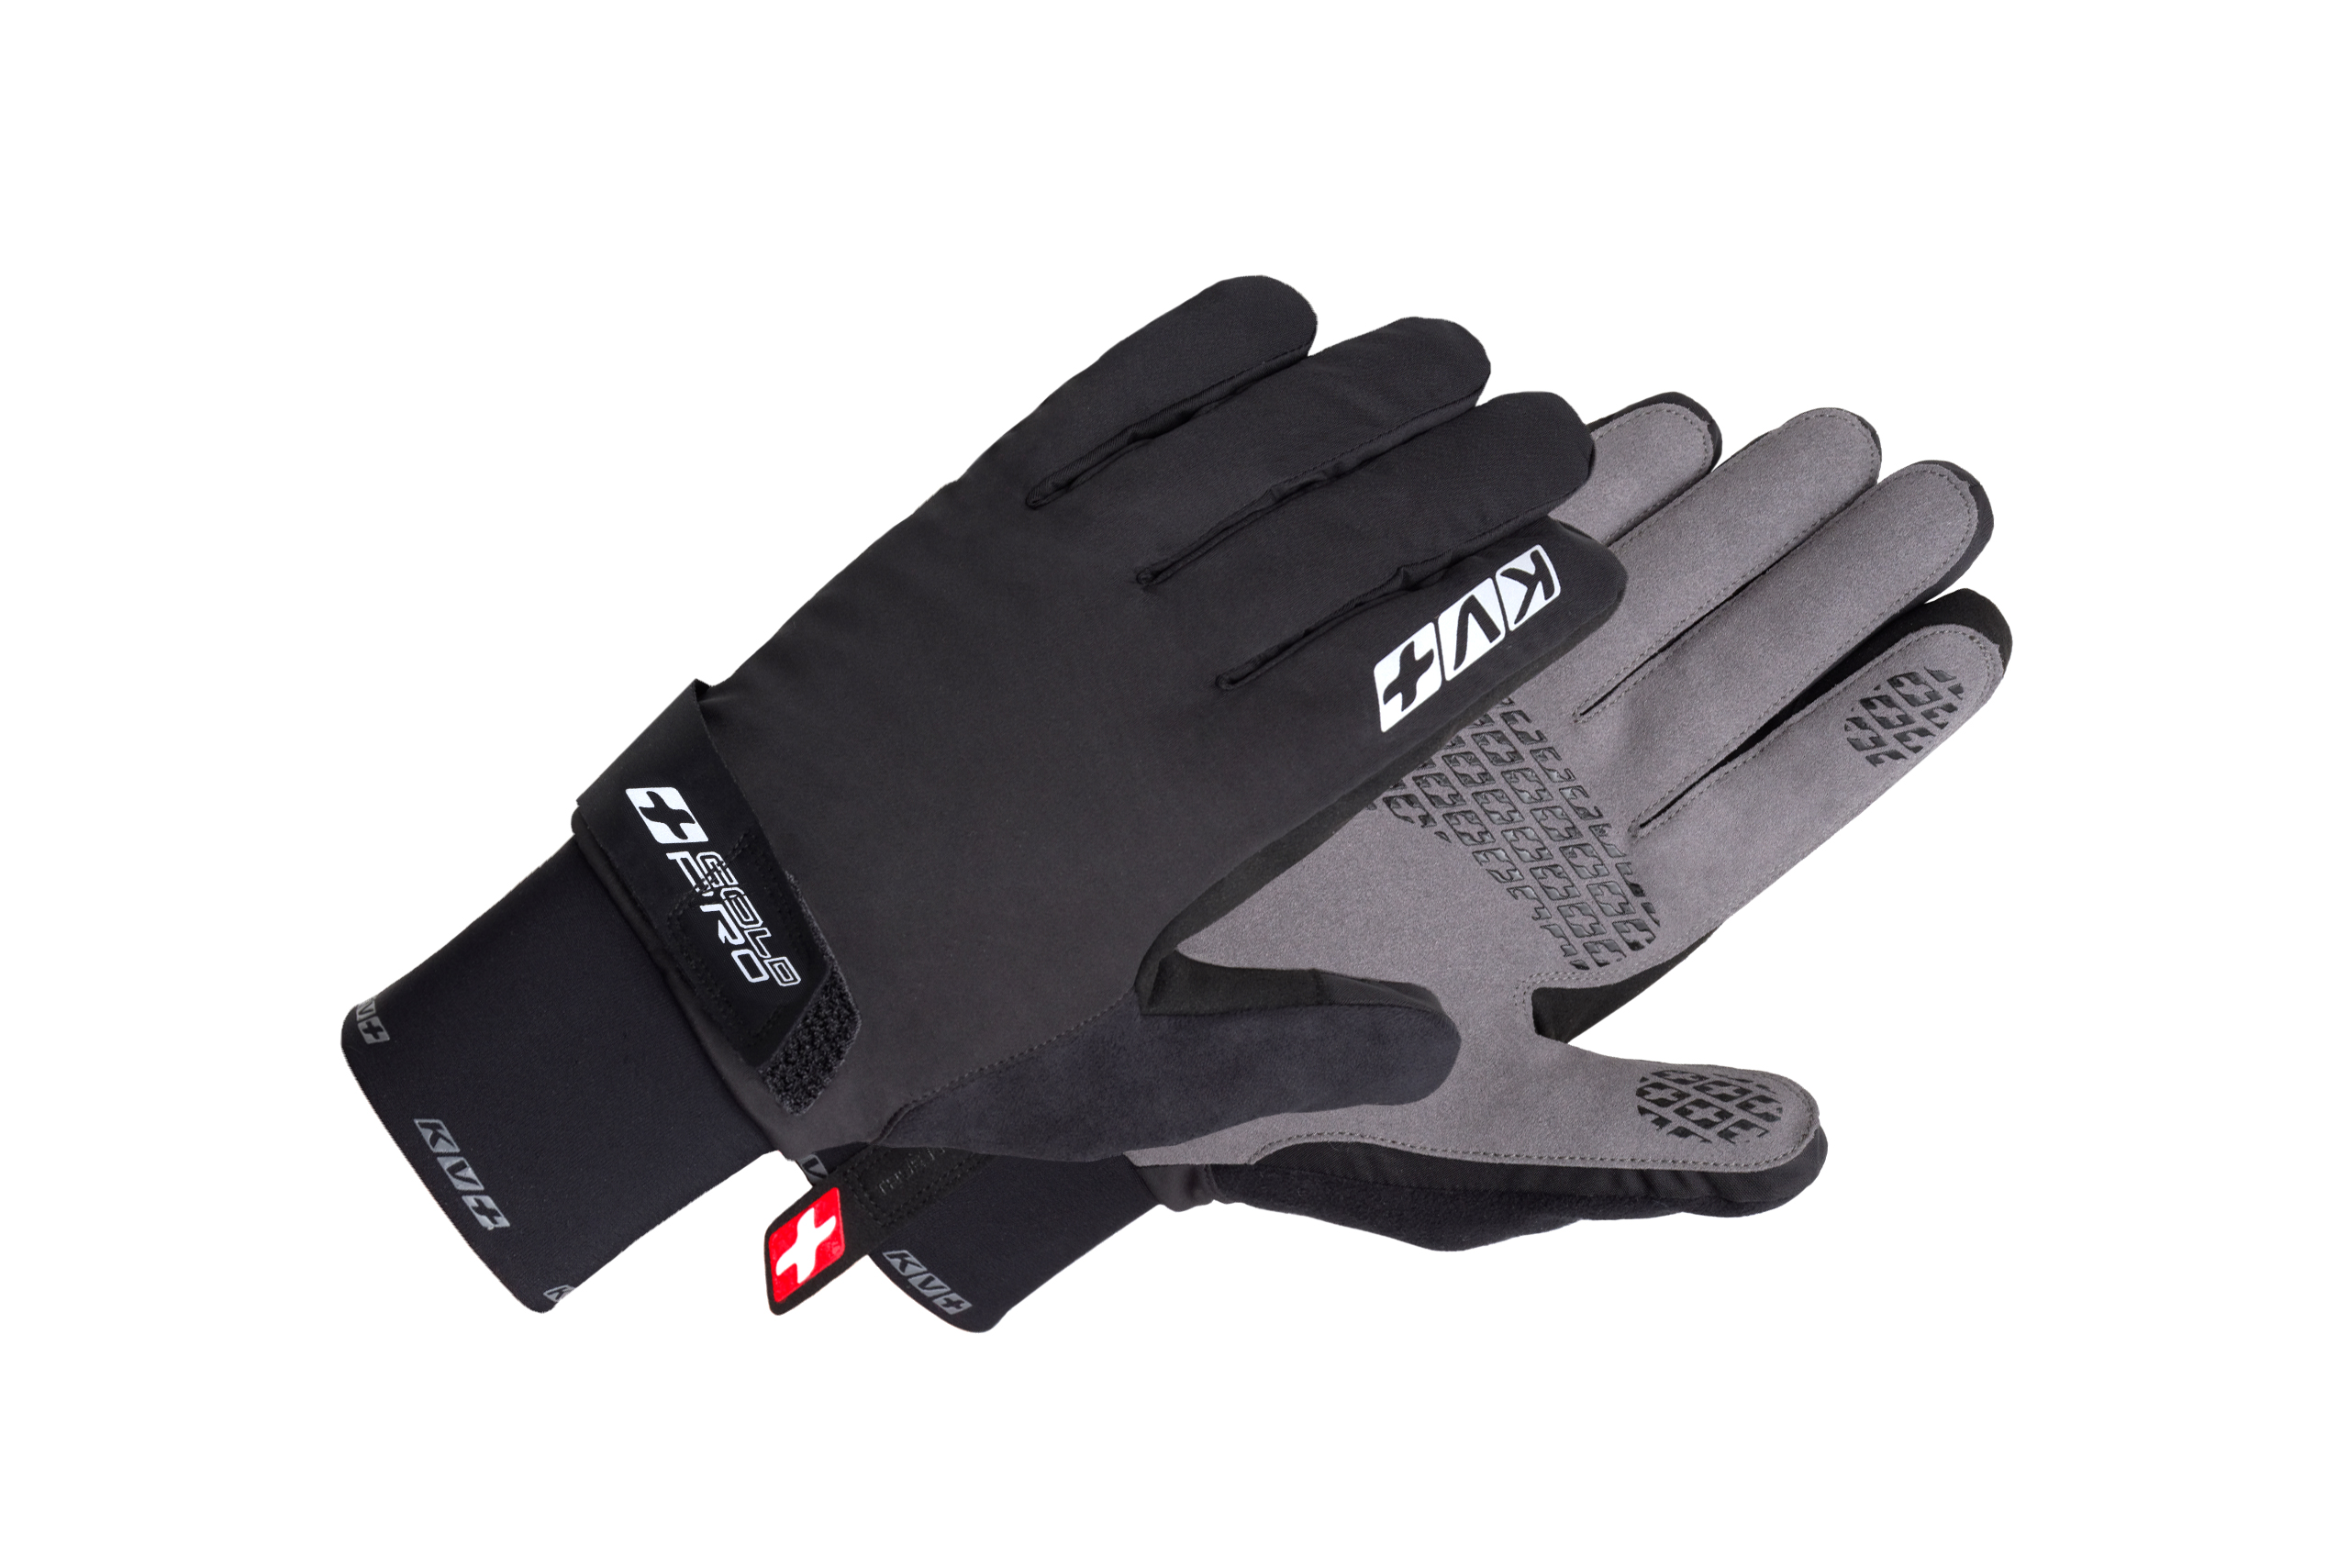 COLD PRO with flap (black)